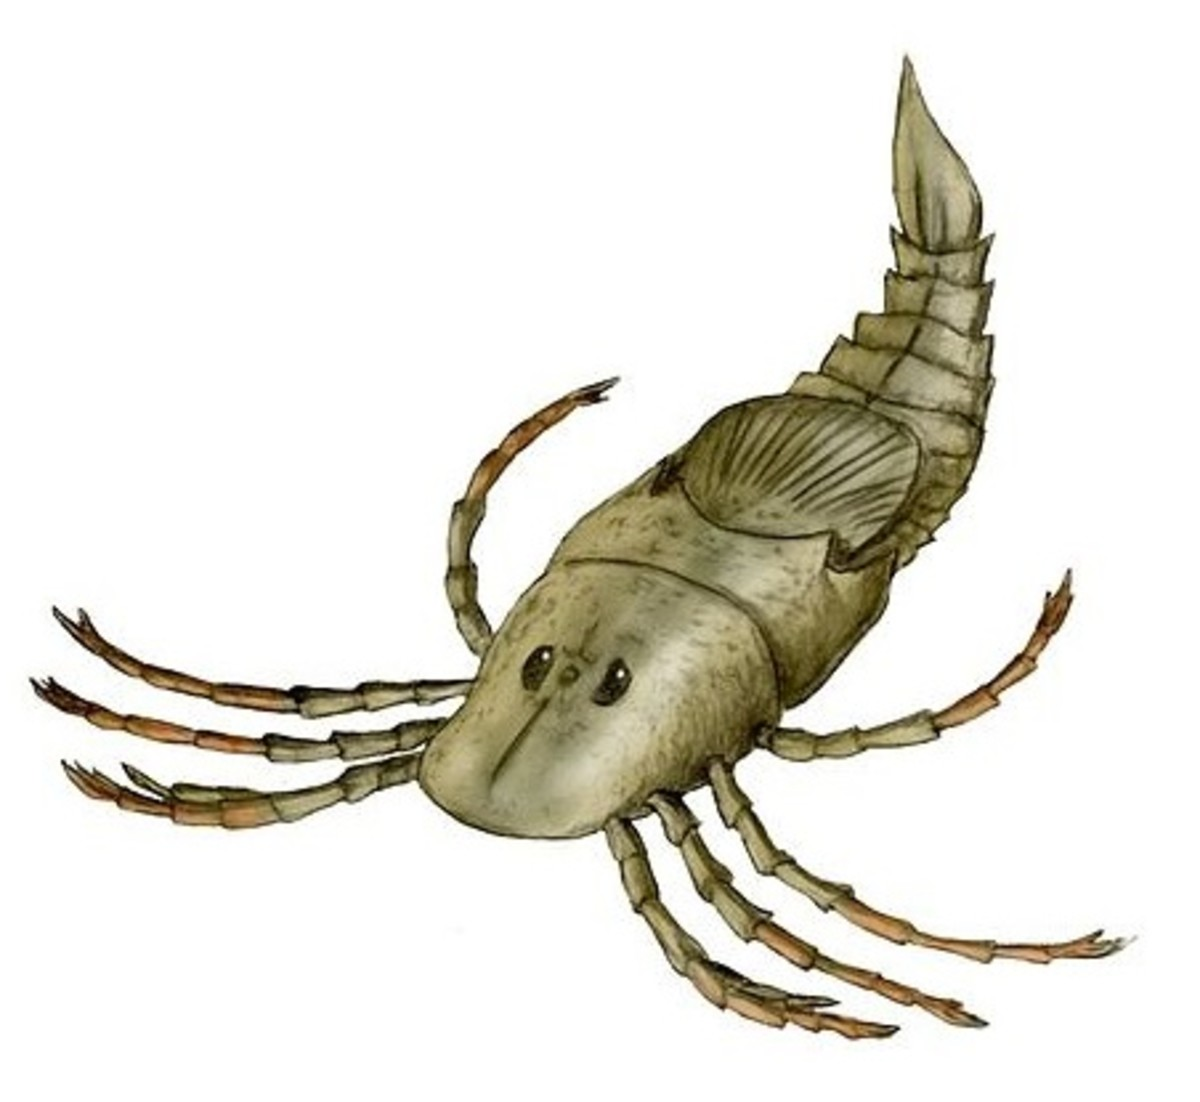 Megarachne was believed to be a giant spider but it was actually a sea scorpion.